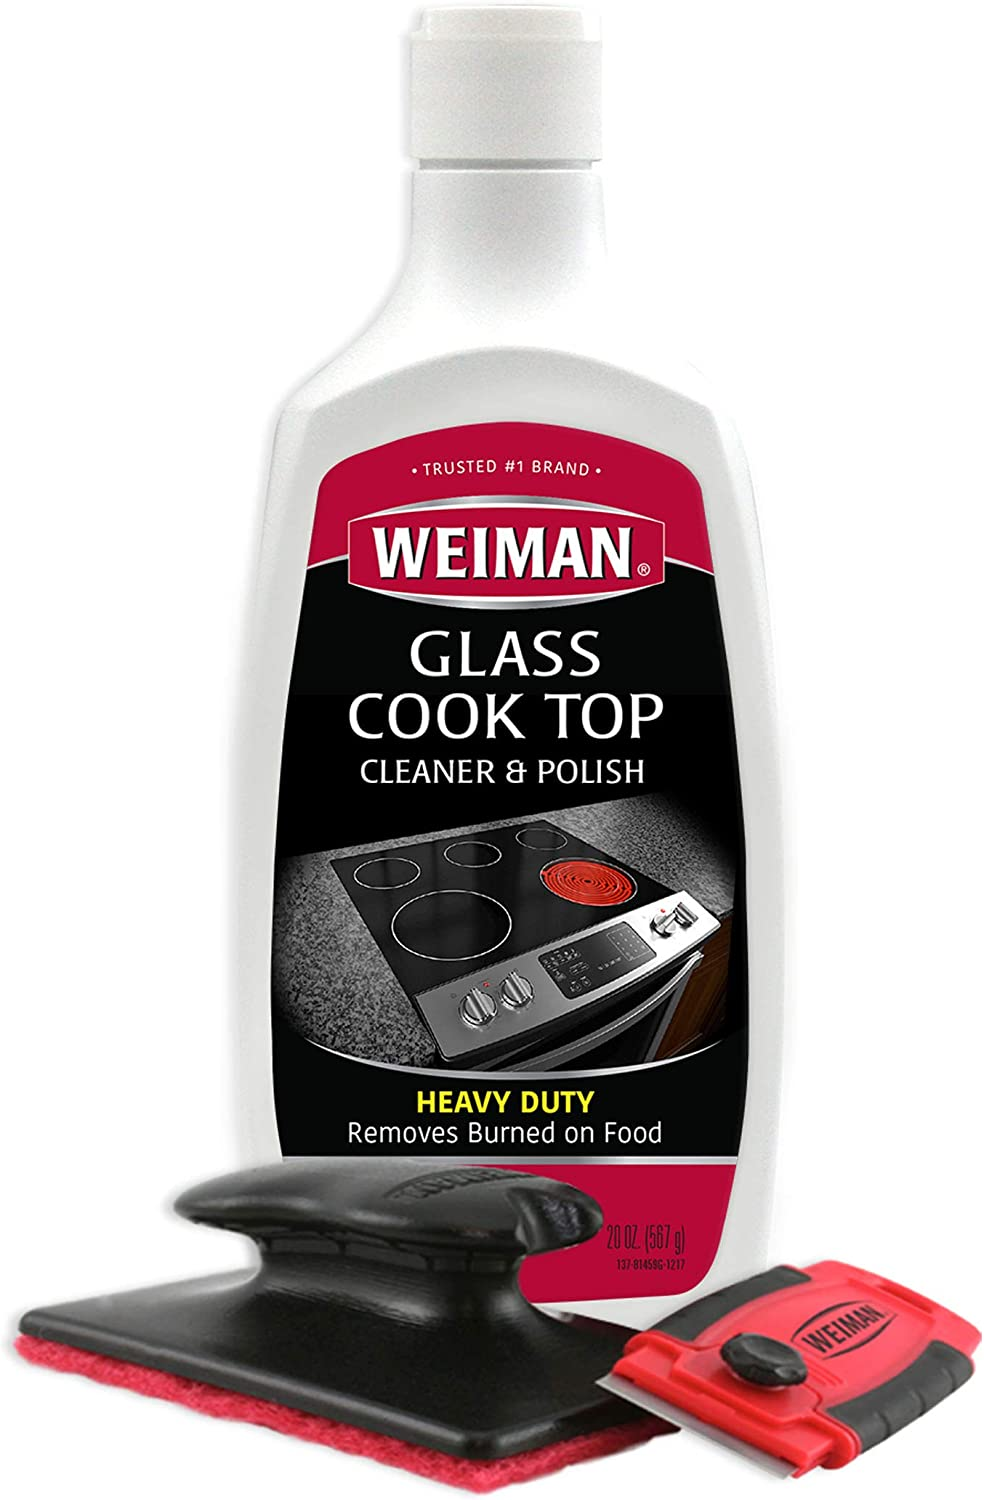 Weiman Cooktop Cleaner Kit - Cook Top Cleaner and Polish 20 Ounce - Scrubbing Pad, Cleaning Tool, Cooktop Razor Scraper